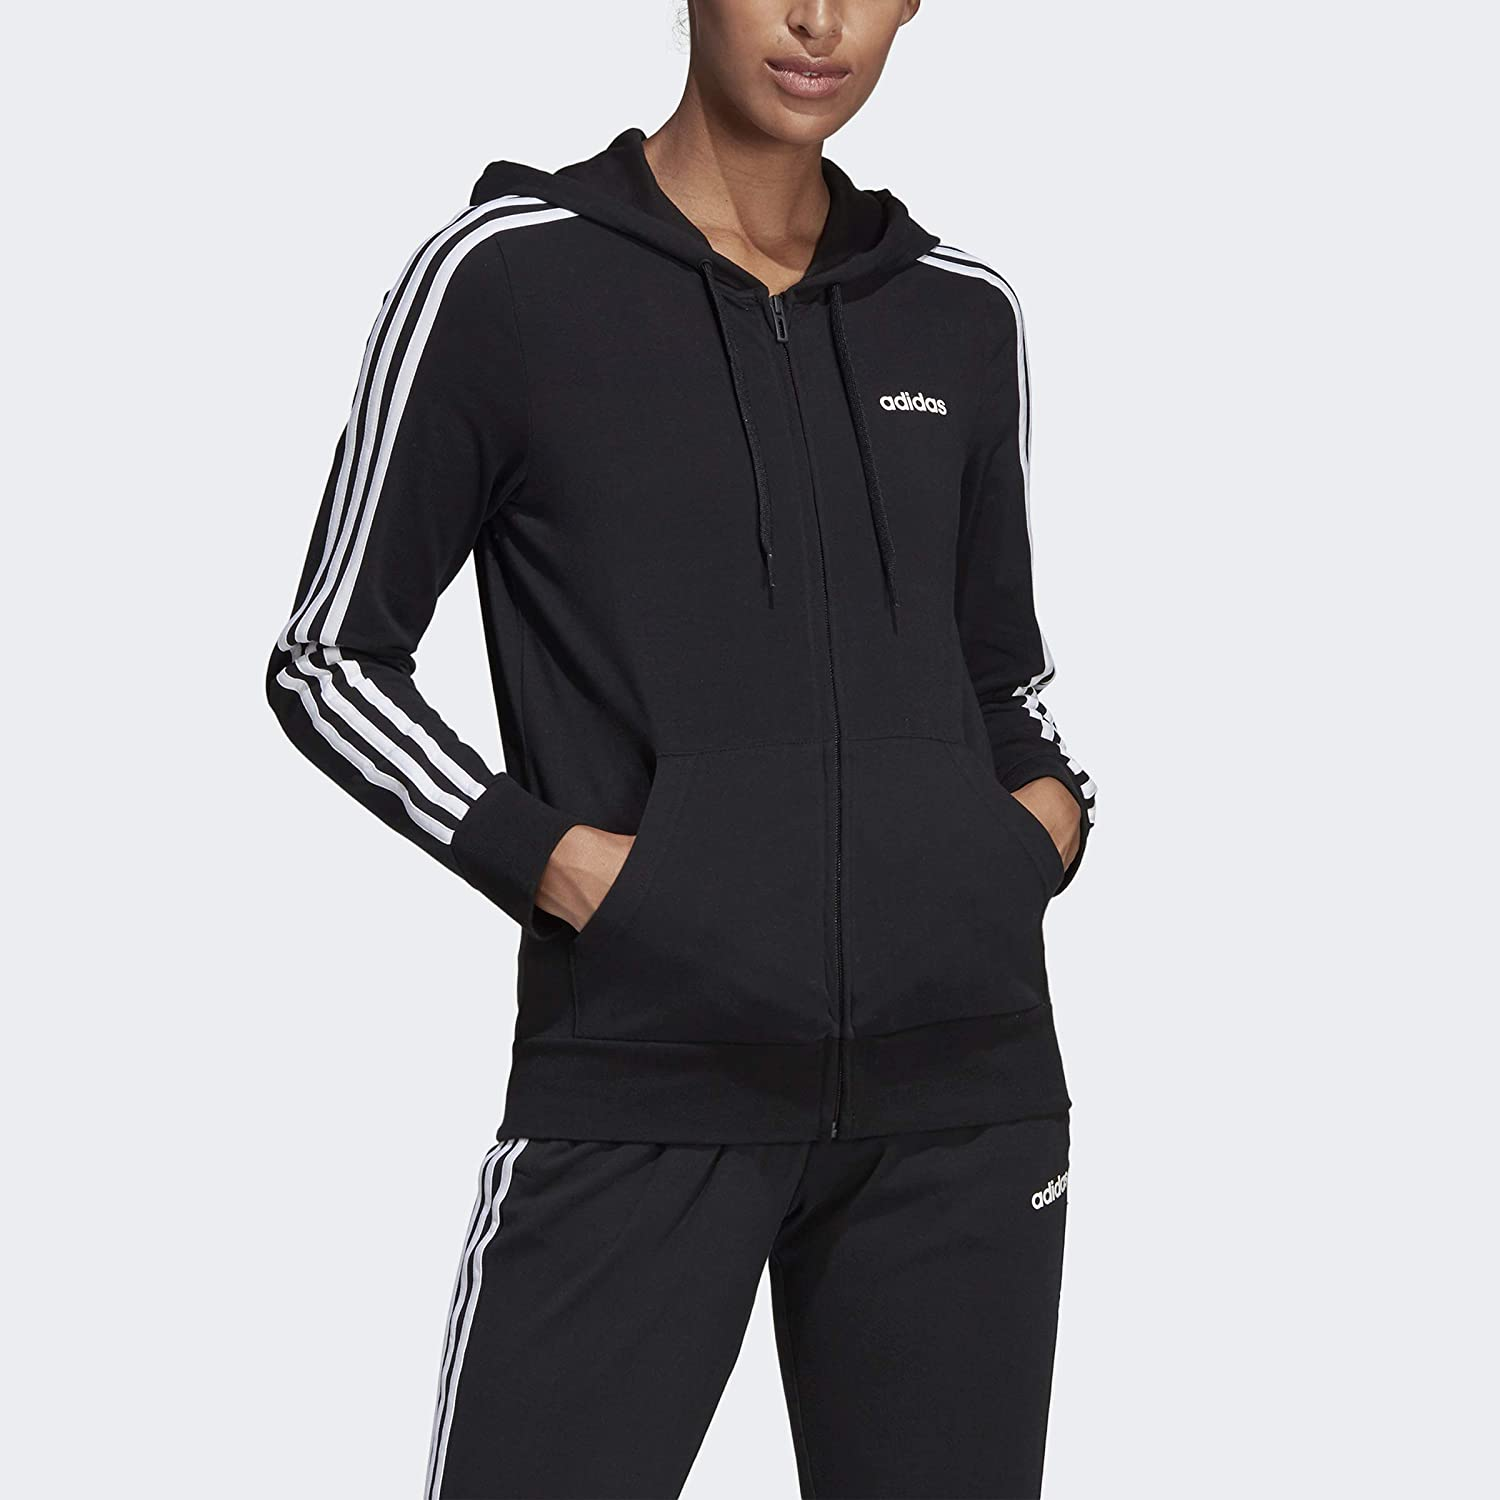 adidas Women's Essentials 3-stripes Single Jersey Full-zip Hoodie